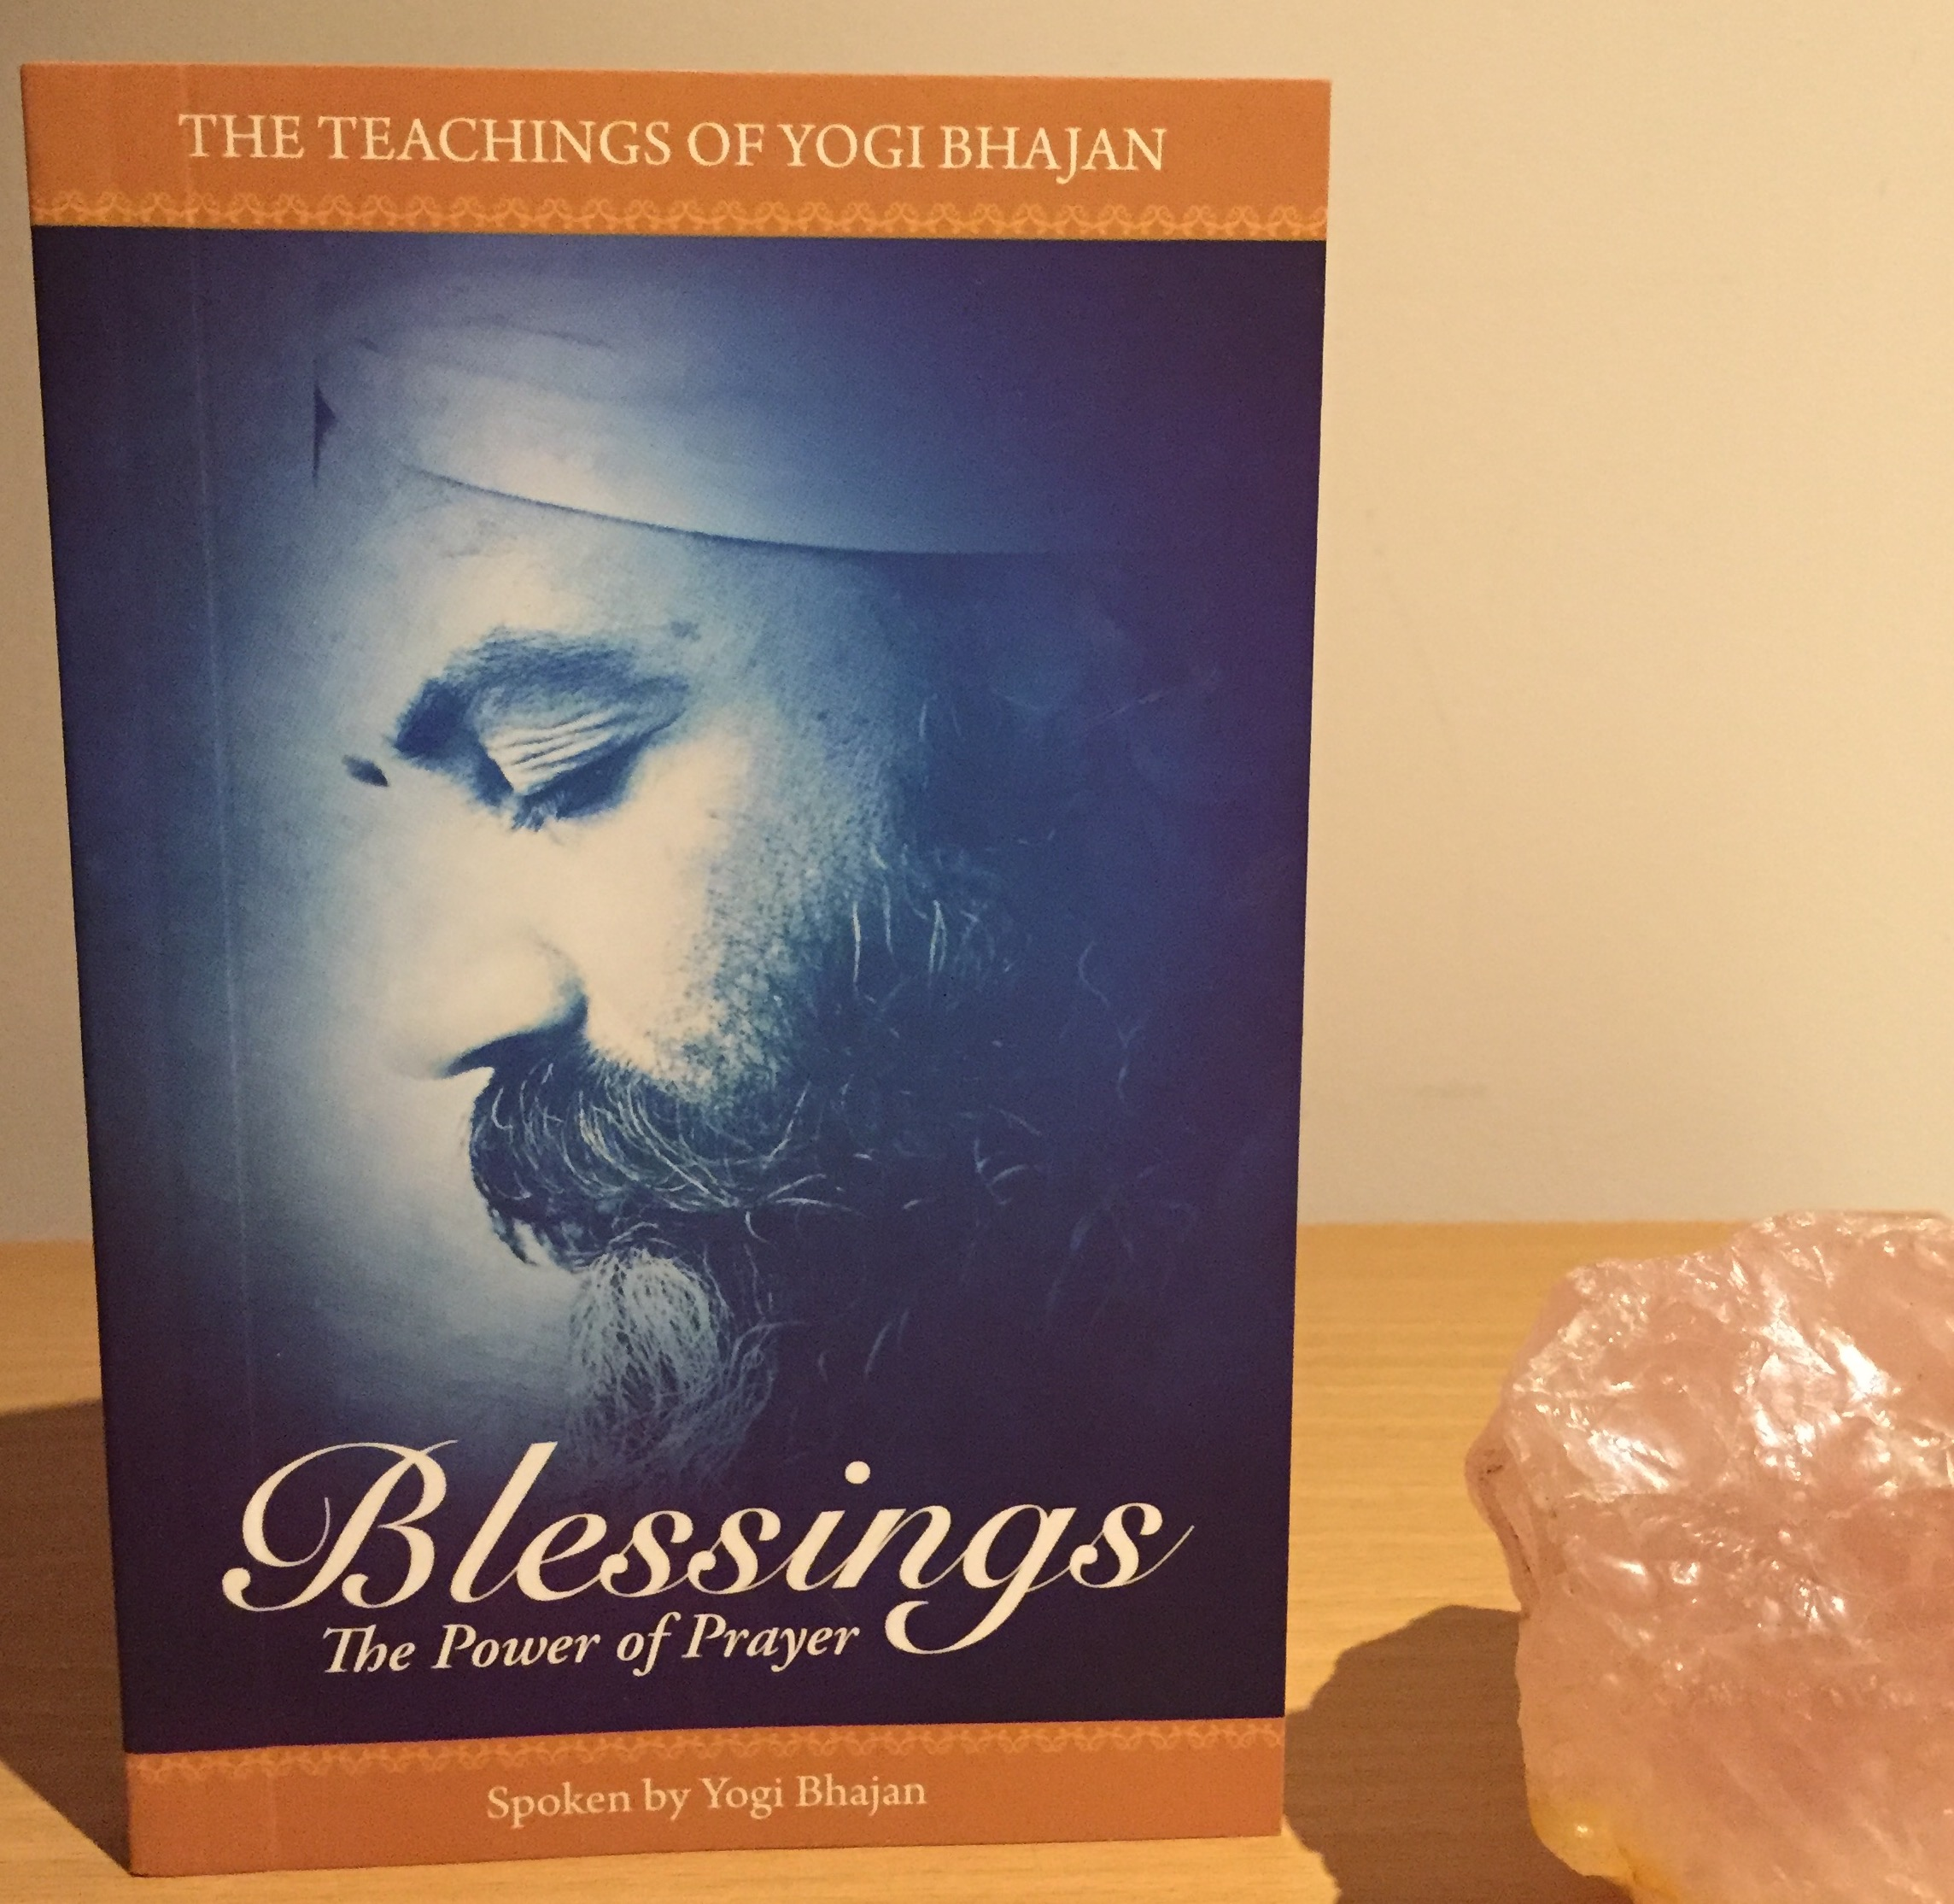 The Teachings of Yogi Bhajan – Blessings, The Power of Prayer